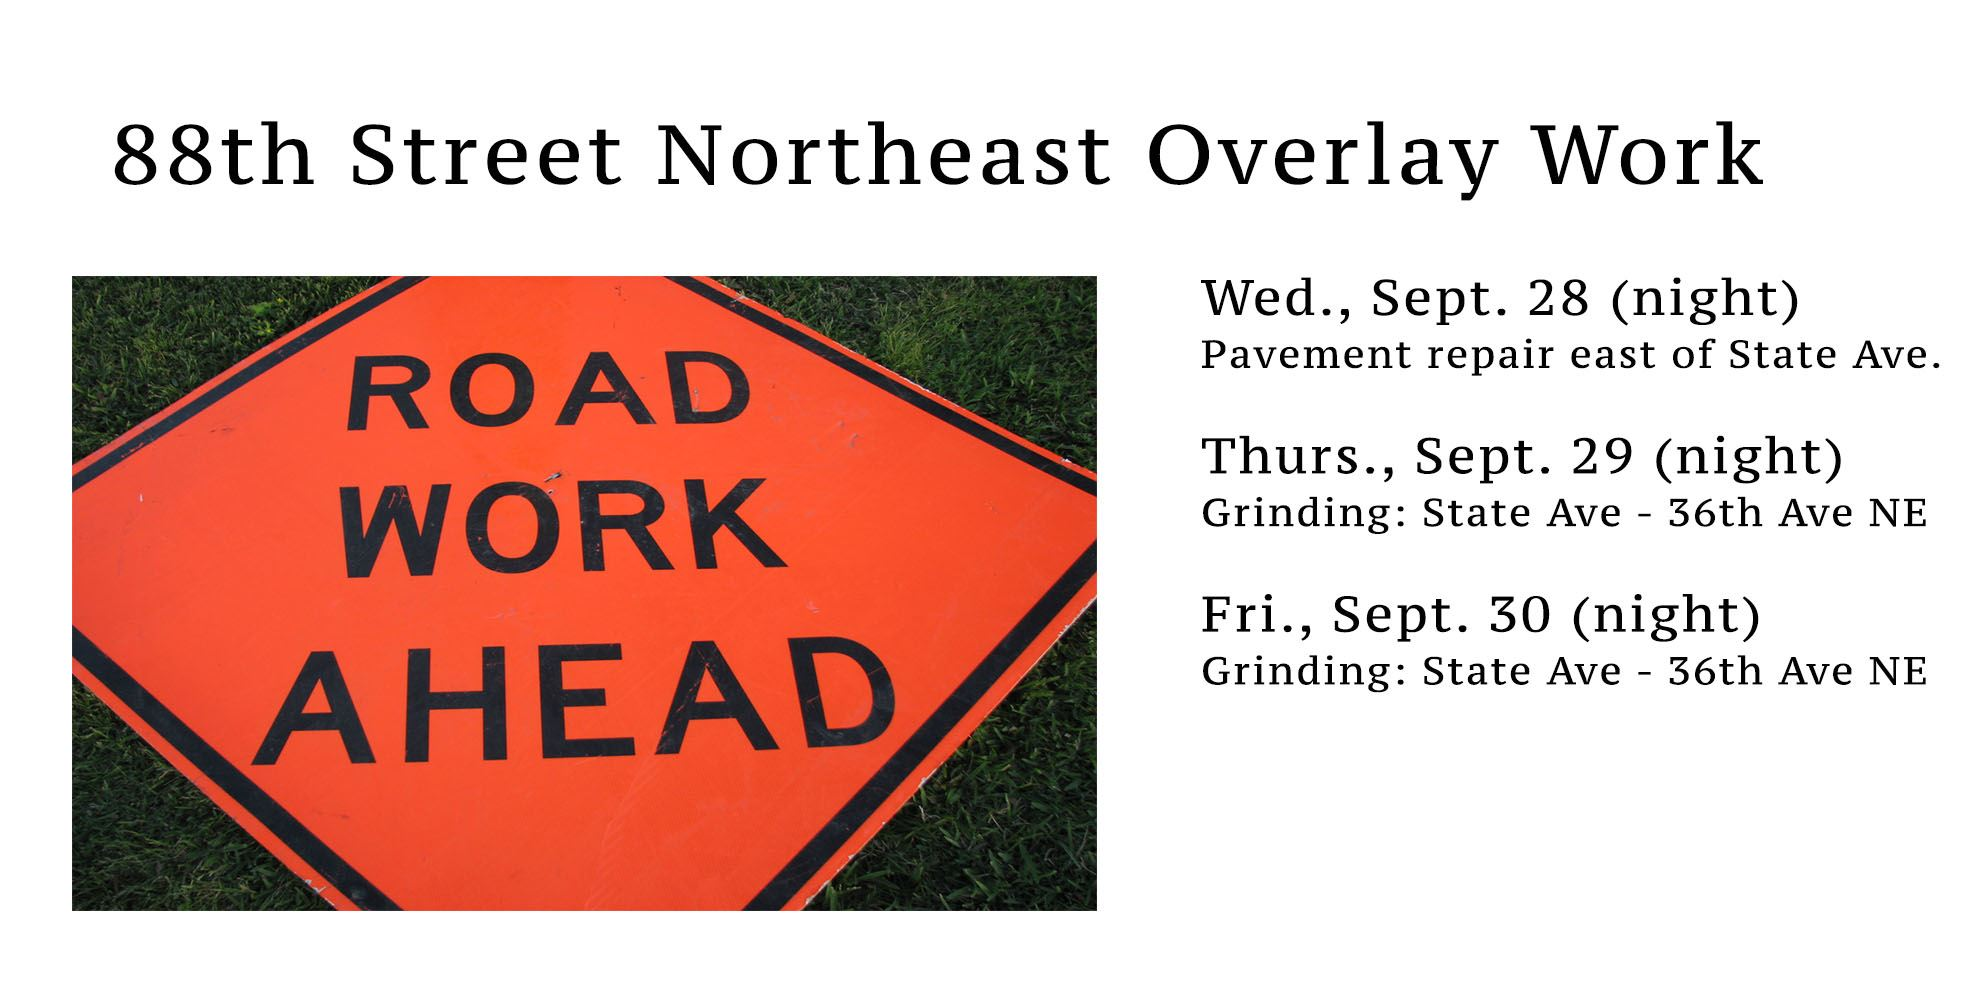 88th St Overlay Work